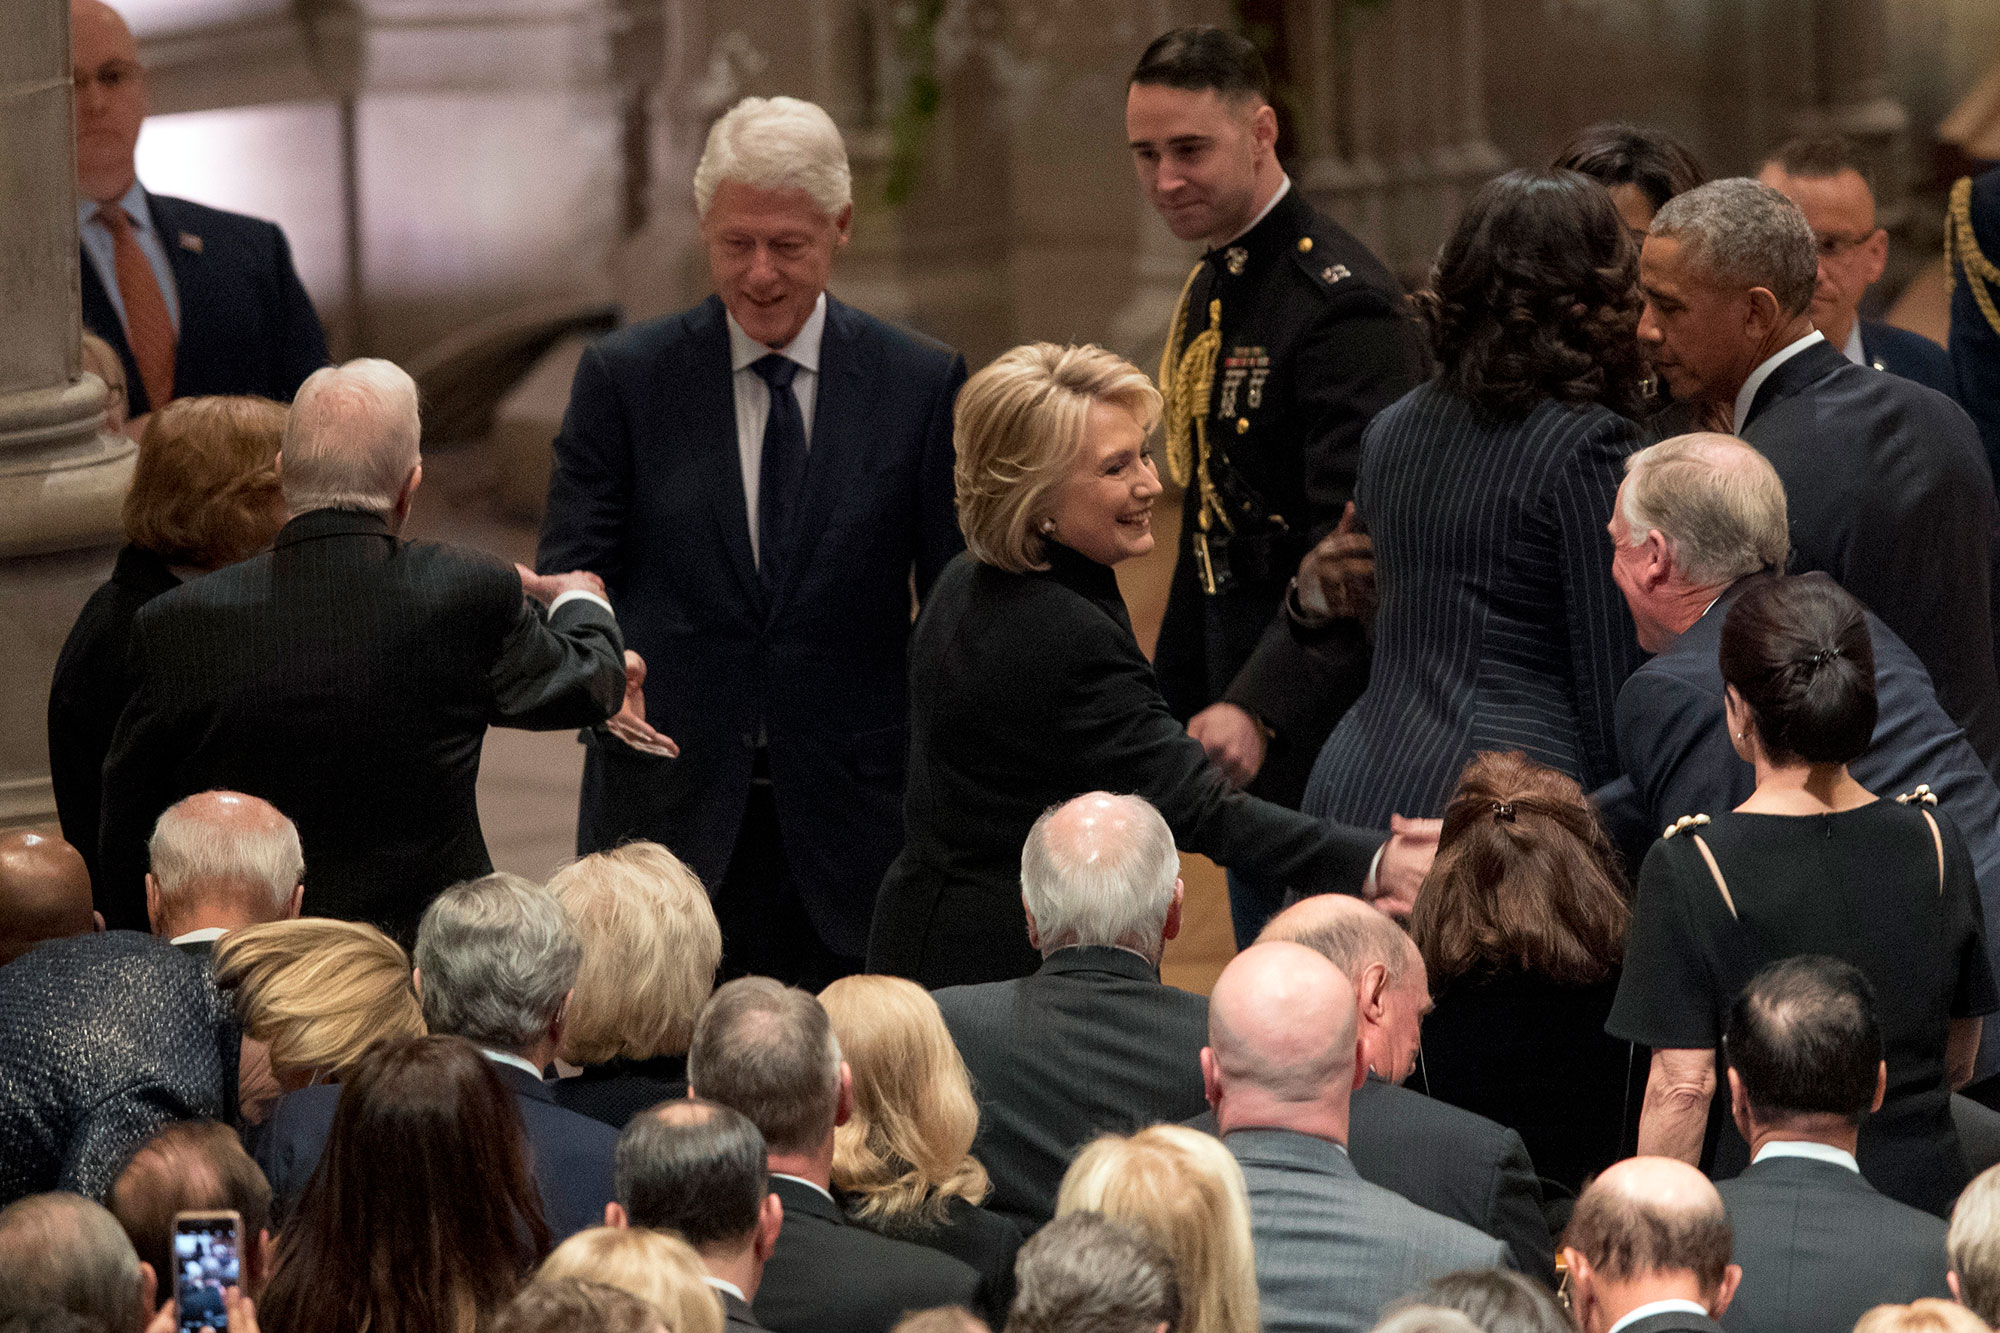 """george bush funeral - The 42nd president and the former presidential candidate released a lengthy statement after George H.W.'s passing. """"I will be forever grateful for the friendship we formed,"""" Bill's statement read in part."""